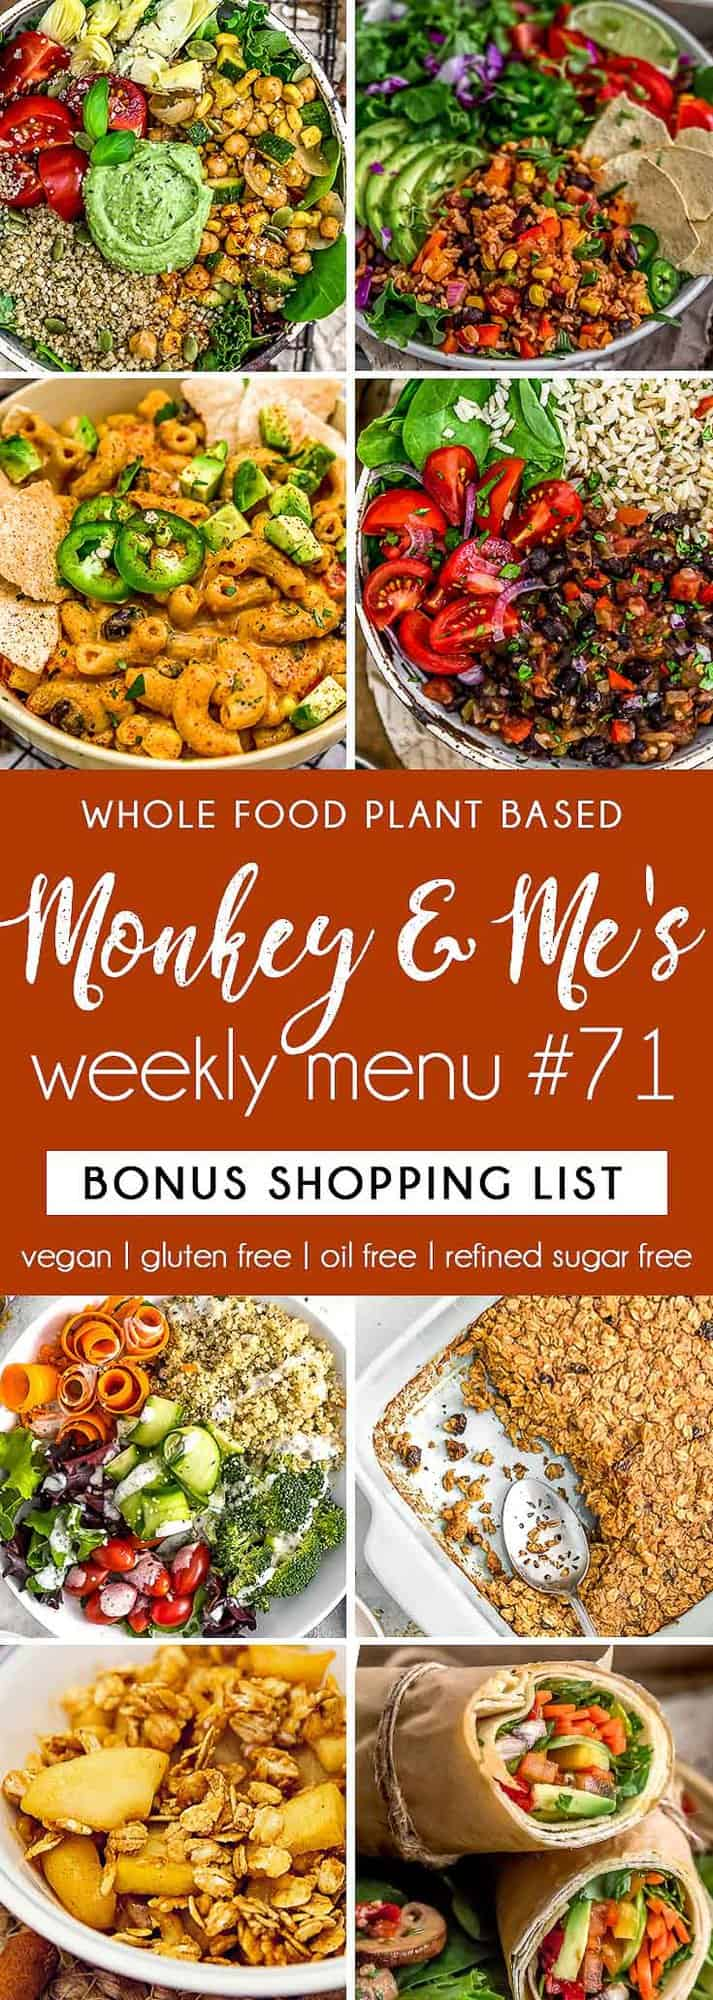 Monkey and Me's Menu 71 featuring 8 recipes